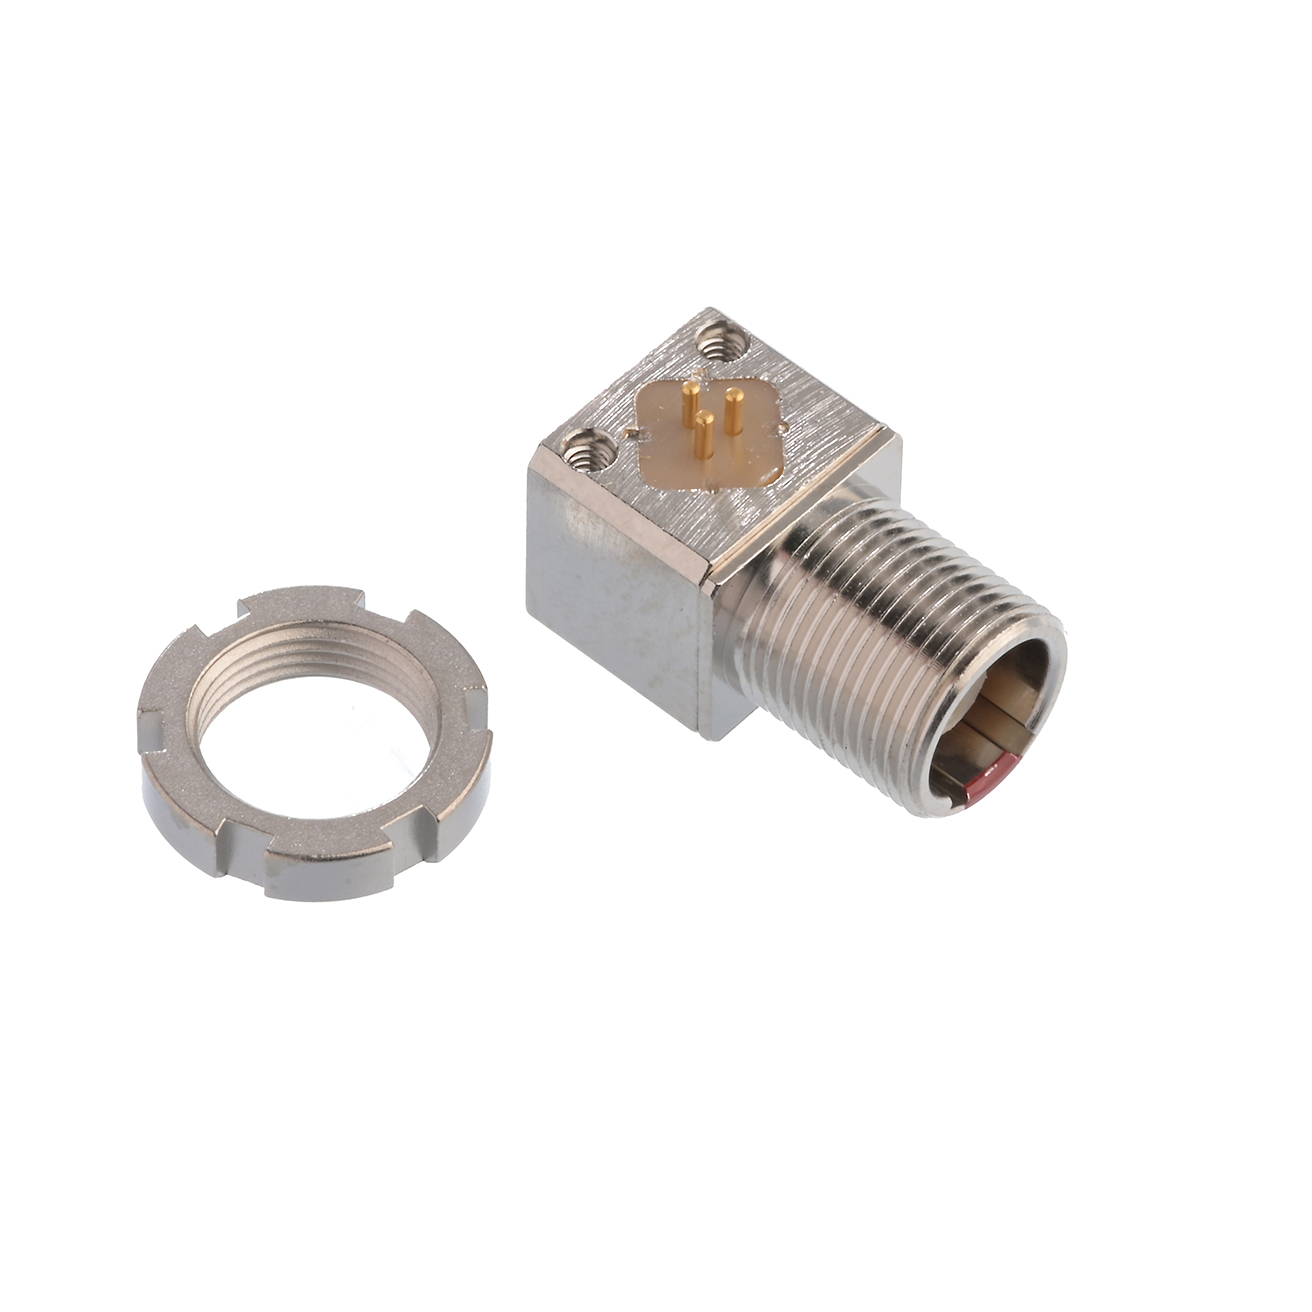 Socket 3-pin with slotted nut